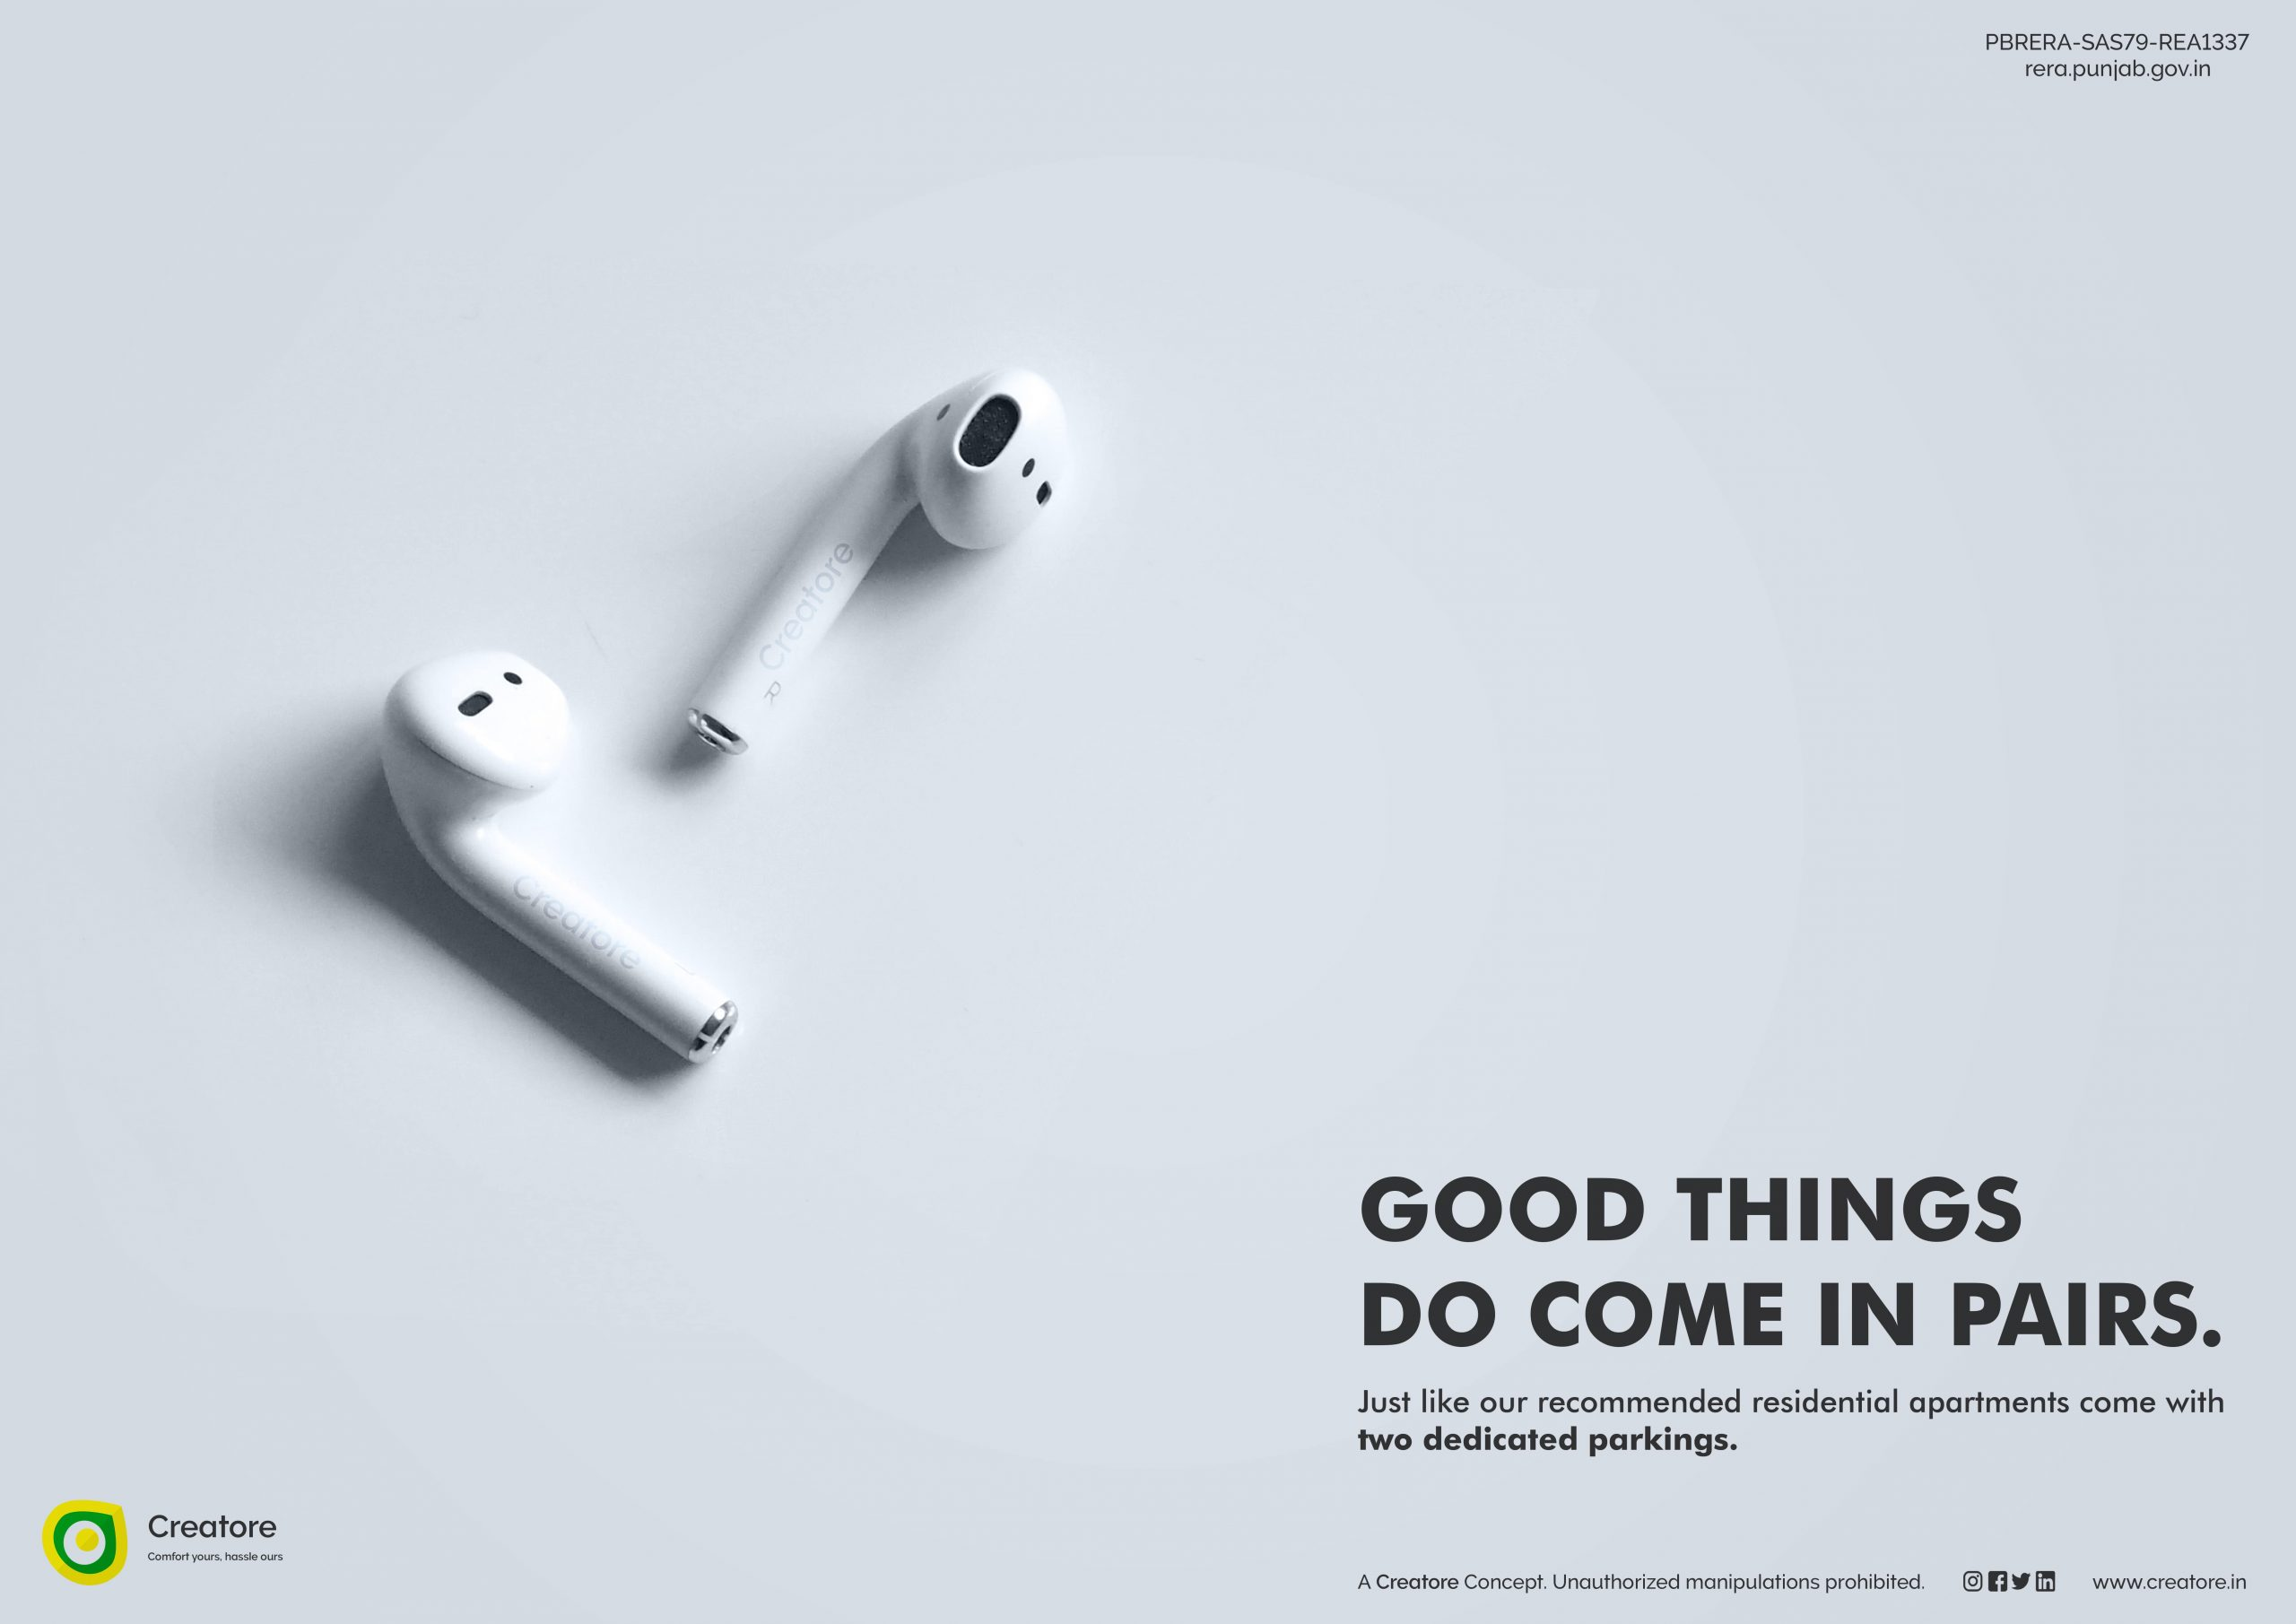 Good-things-come-in-Pairs-Airpods